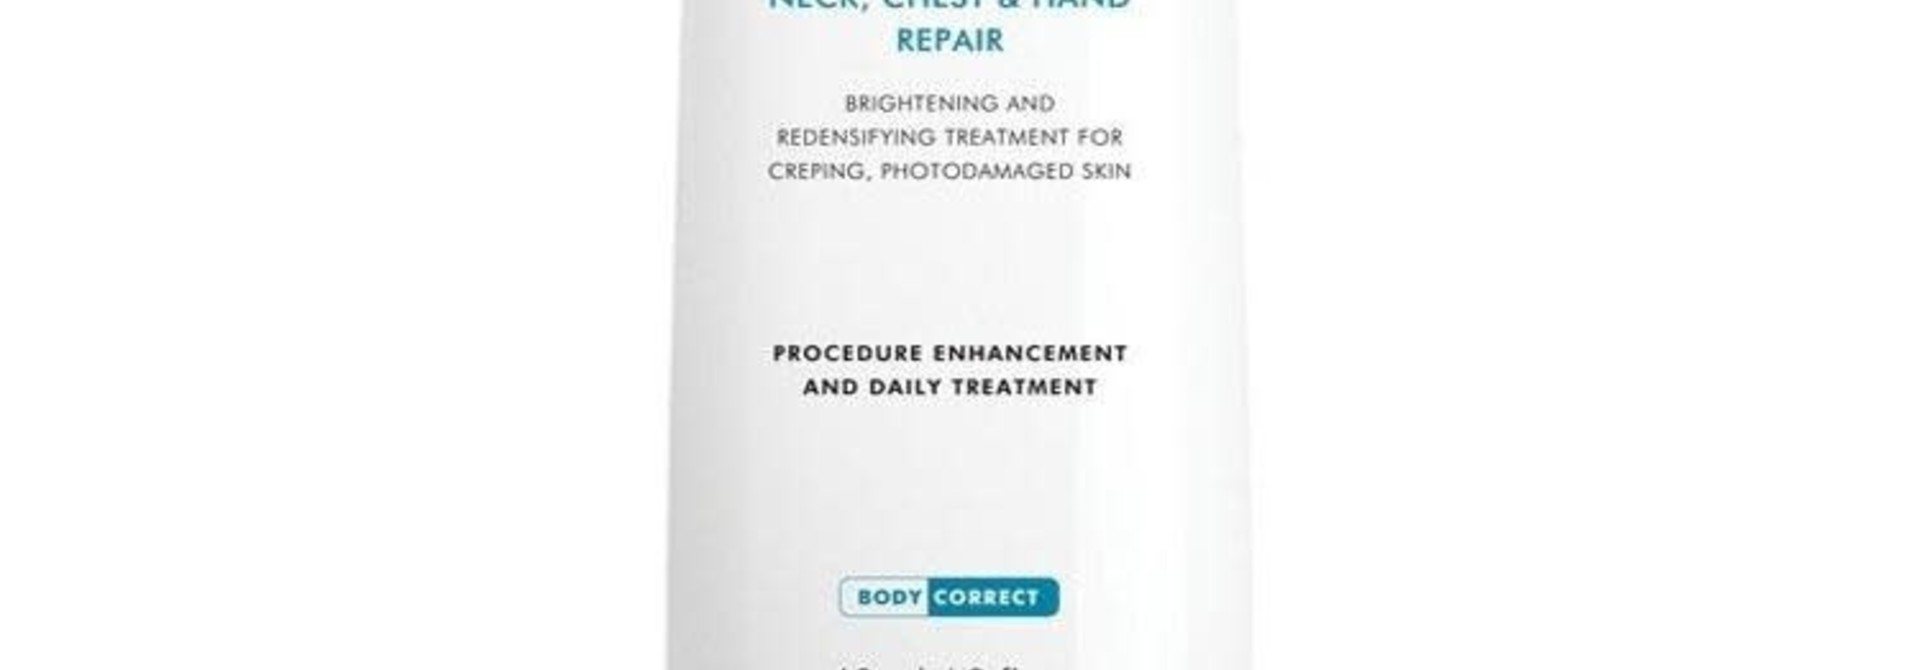 SkinCeuticals - Neck Chest and Hand